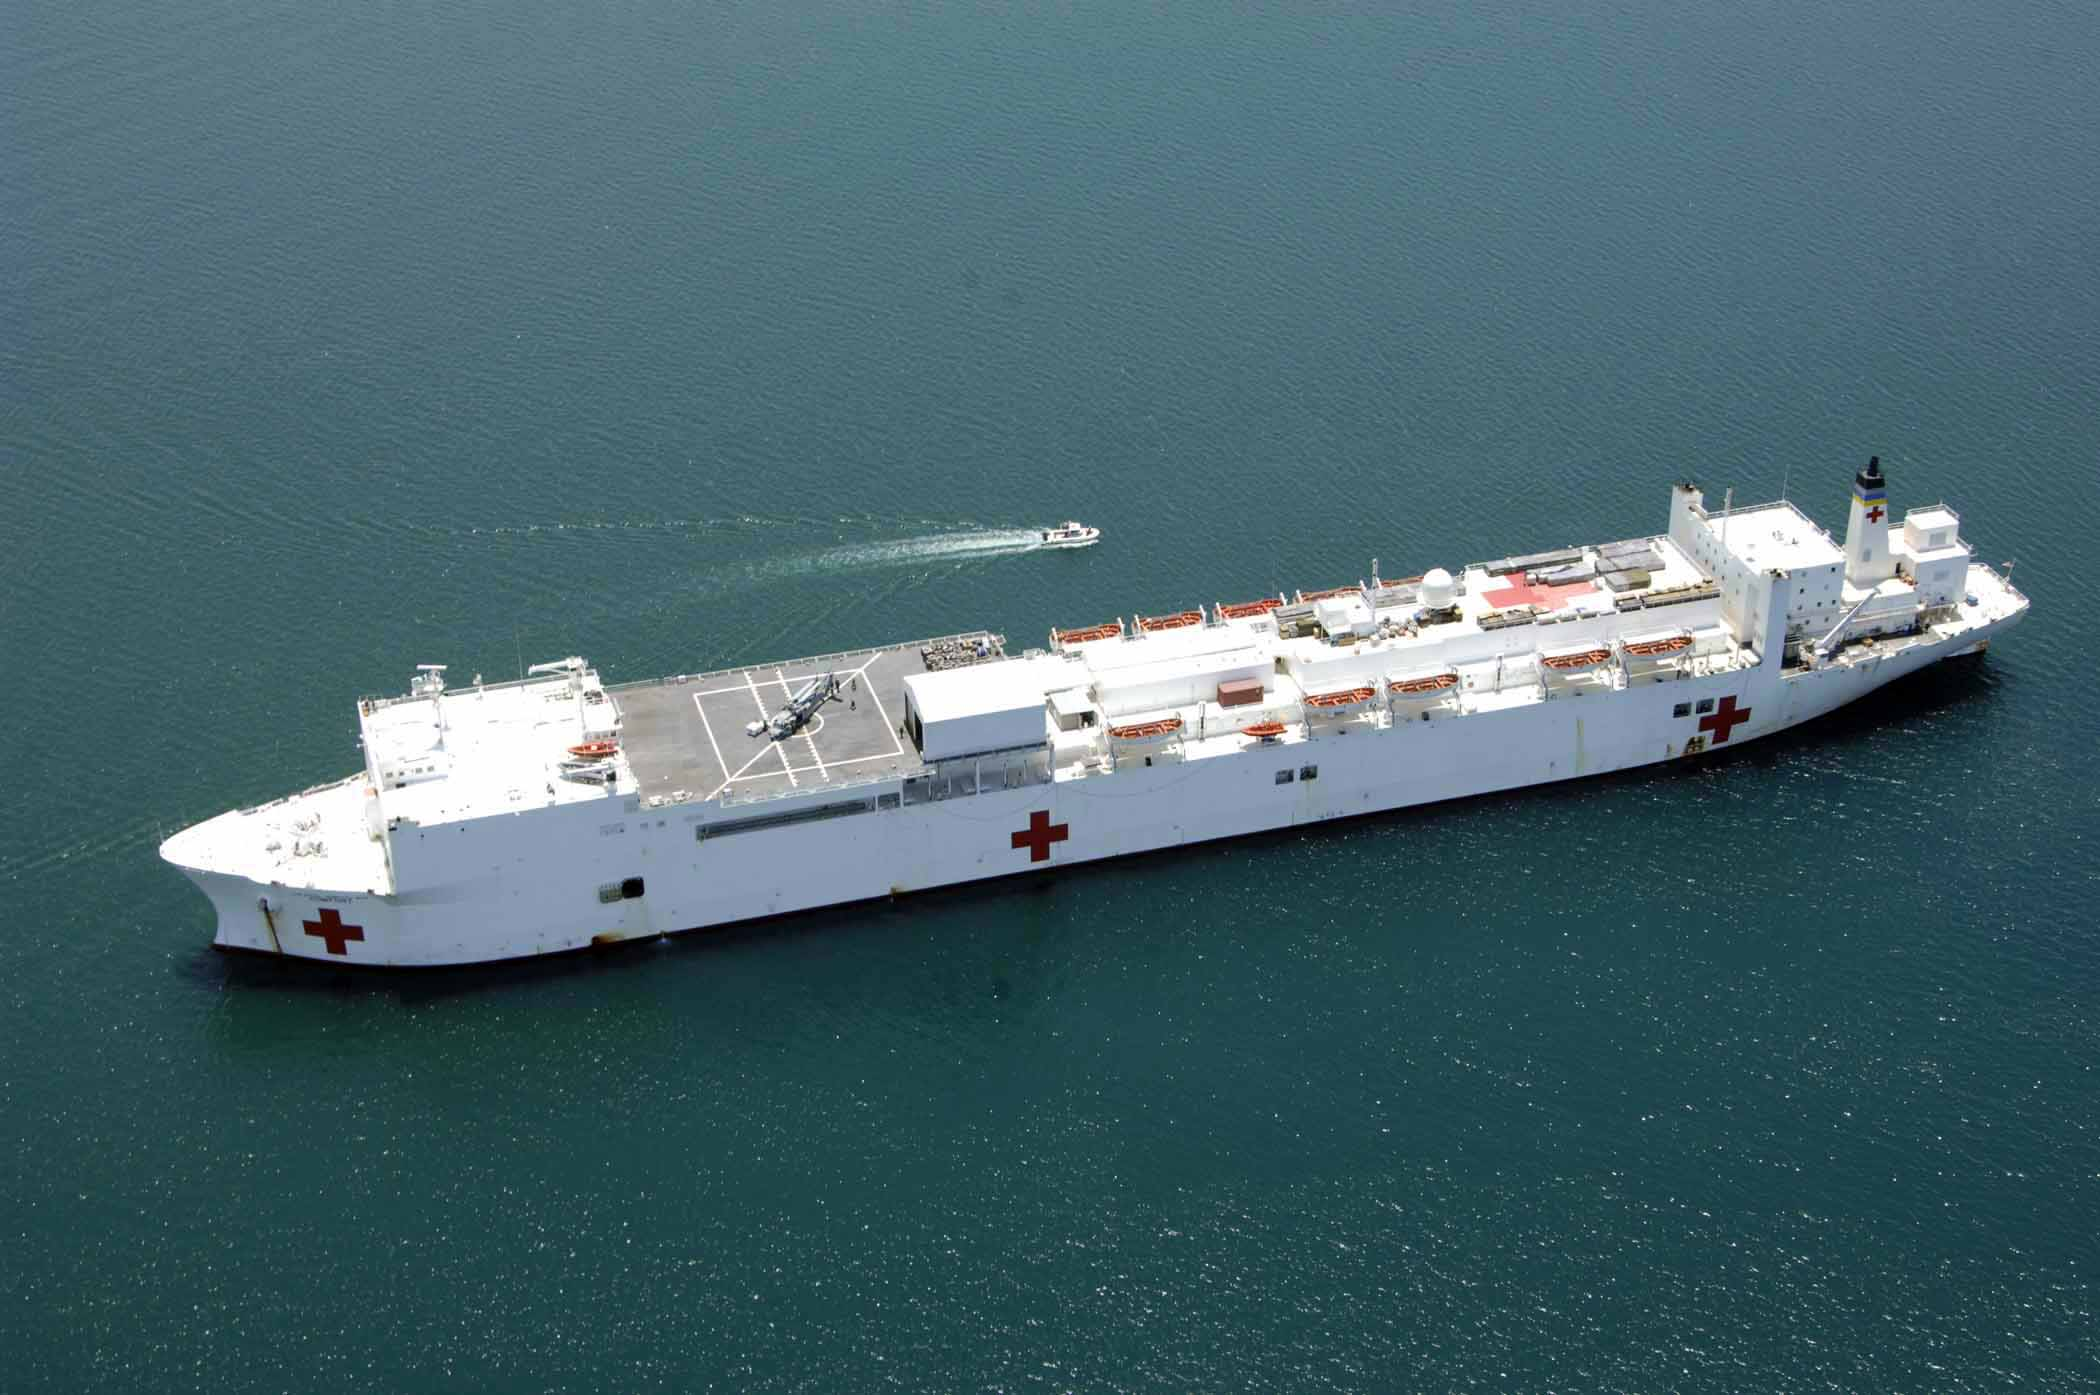 US Lifts Sanctions From Ex-Venezuelan Intelligence Chief For Turning On Maduro, Announces Deployment Of Hospital Ship